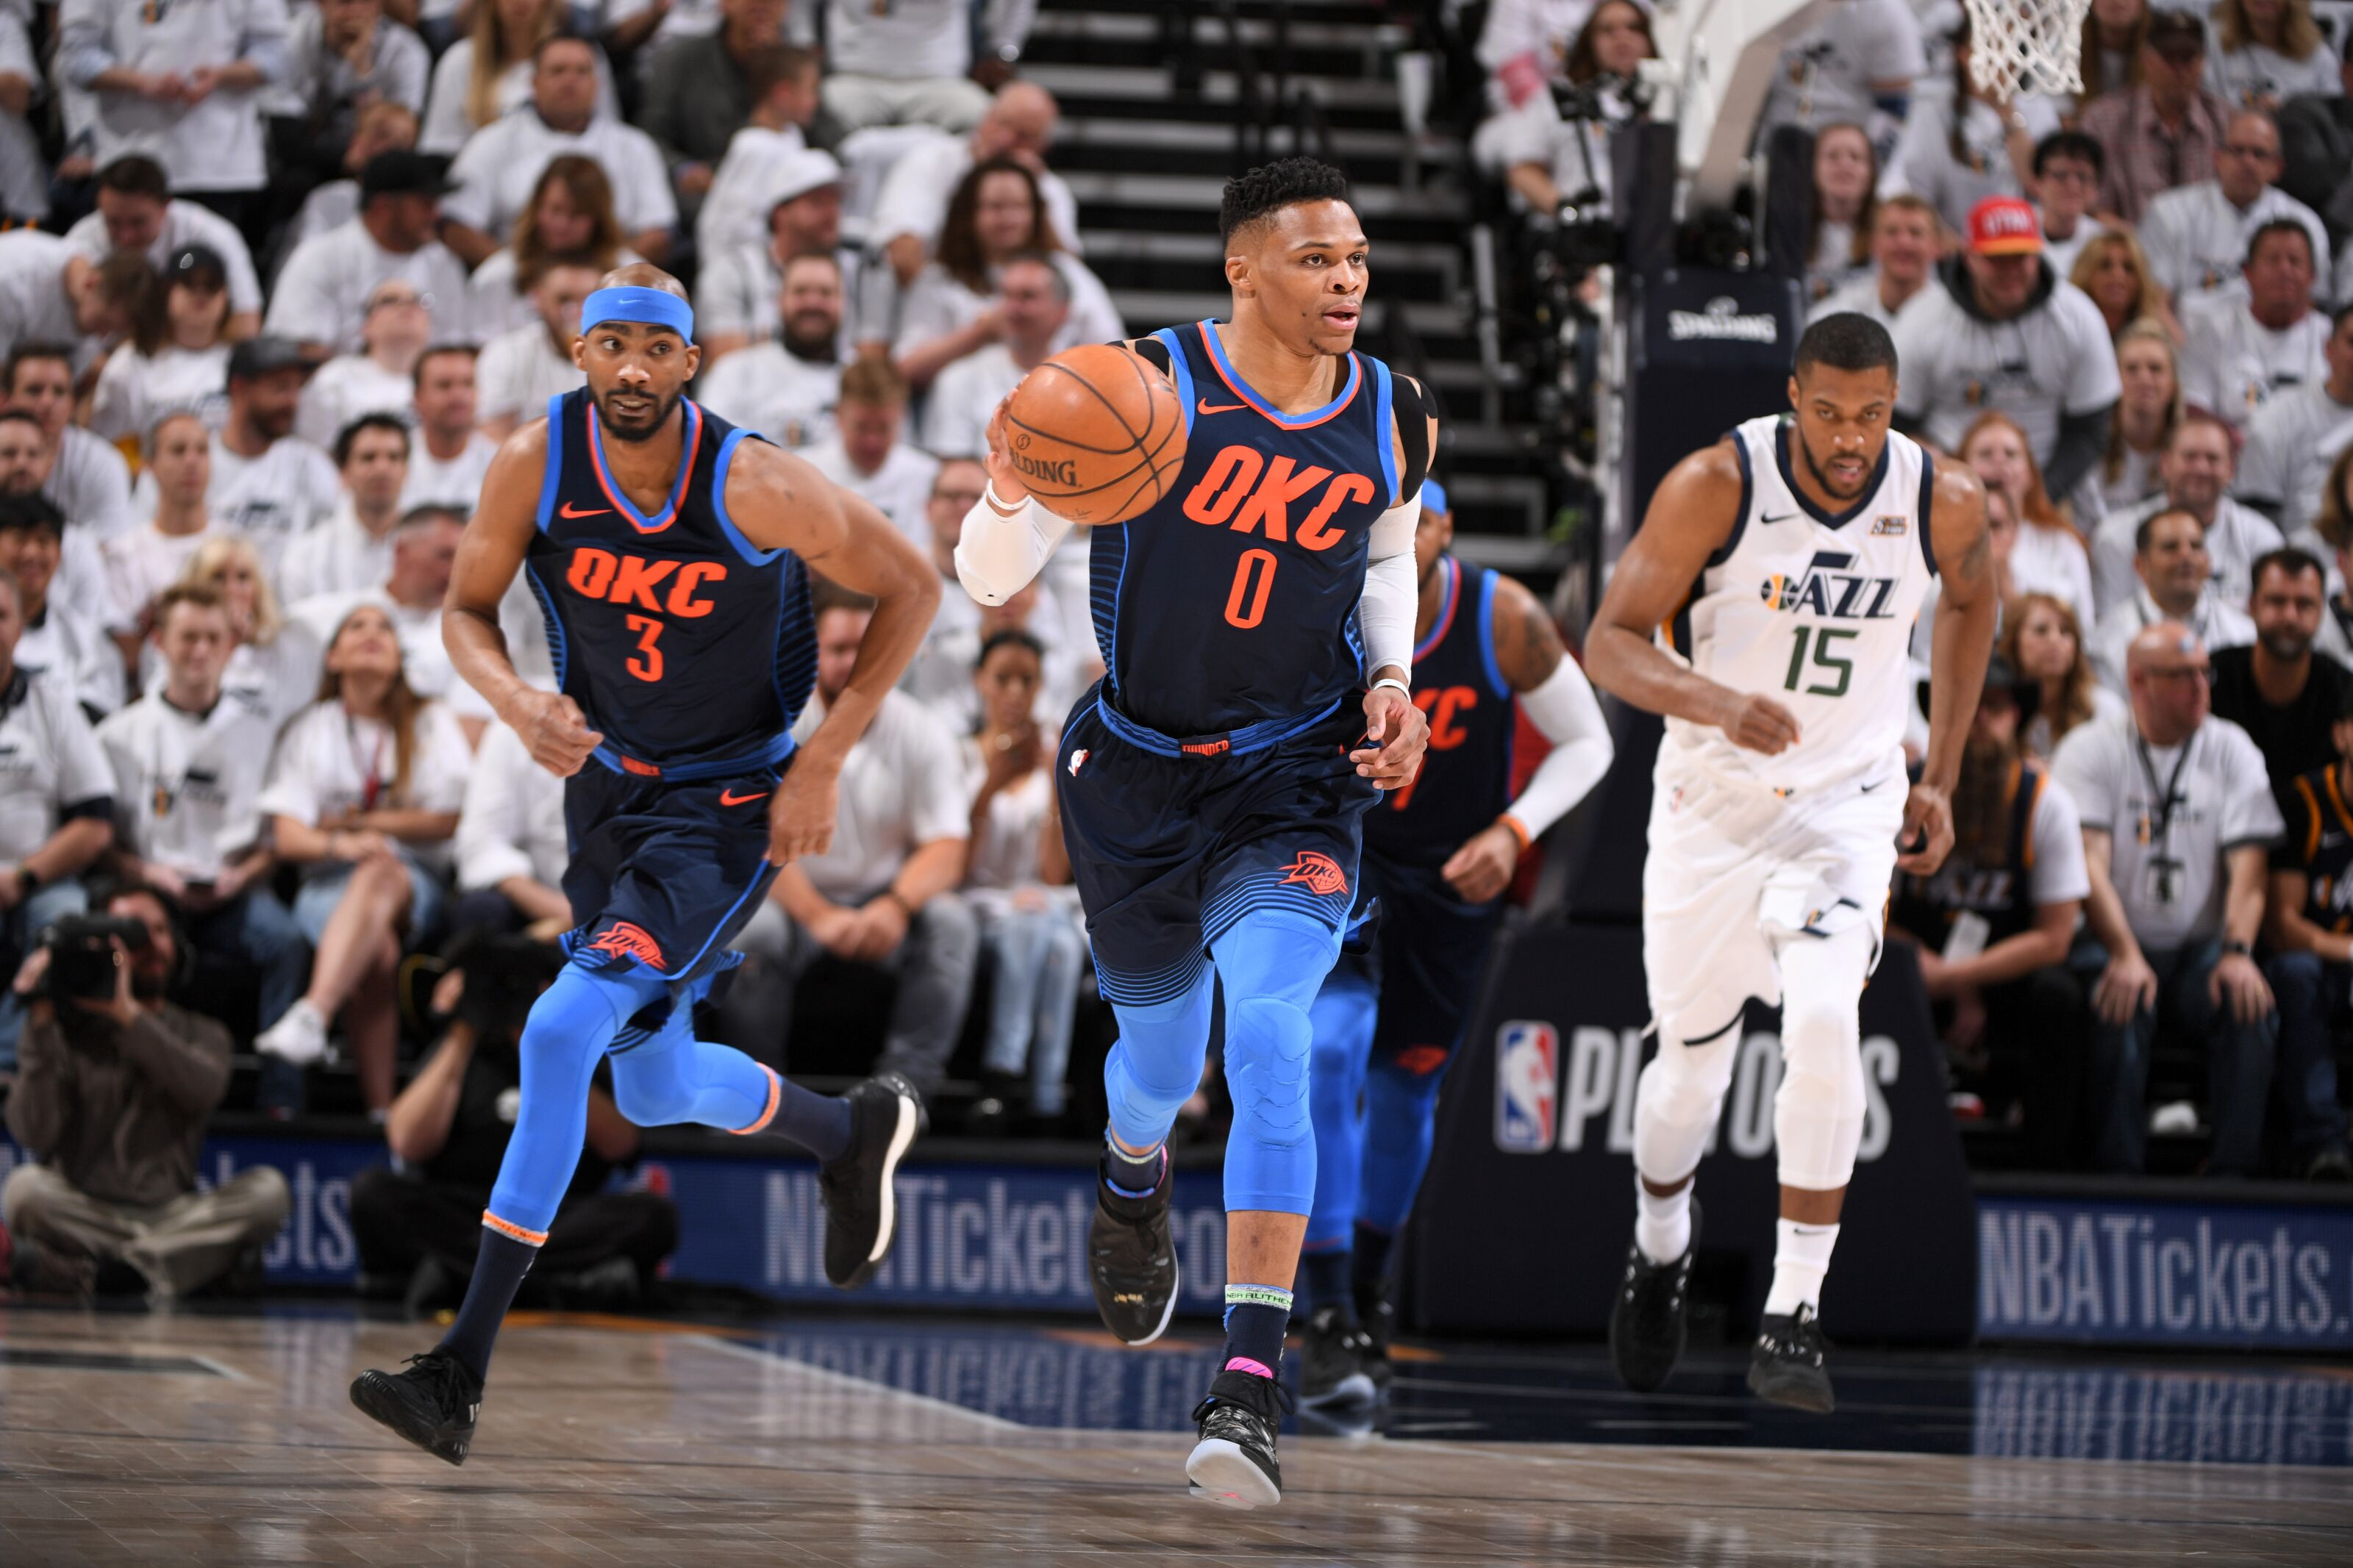 Oklahoma City Thunder  3 takeaways from Game 4 vs. Jazz 6d4df84d6